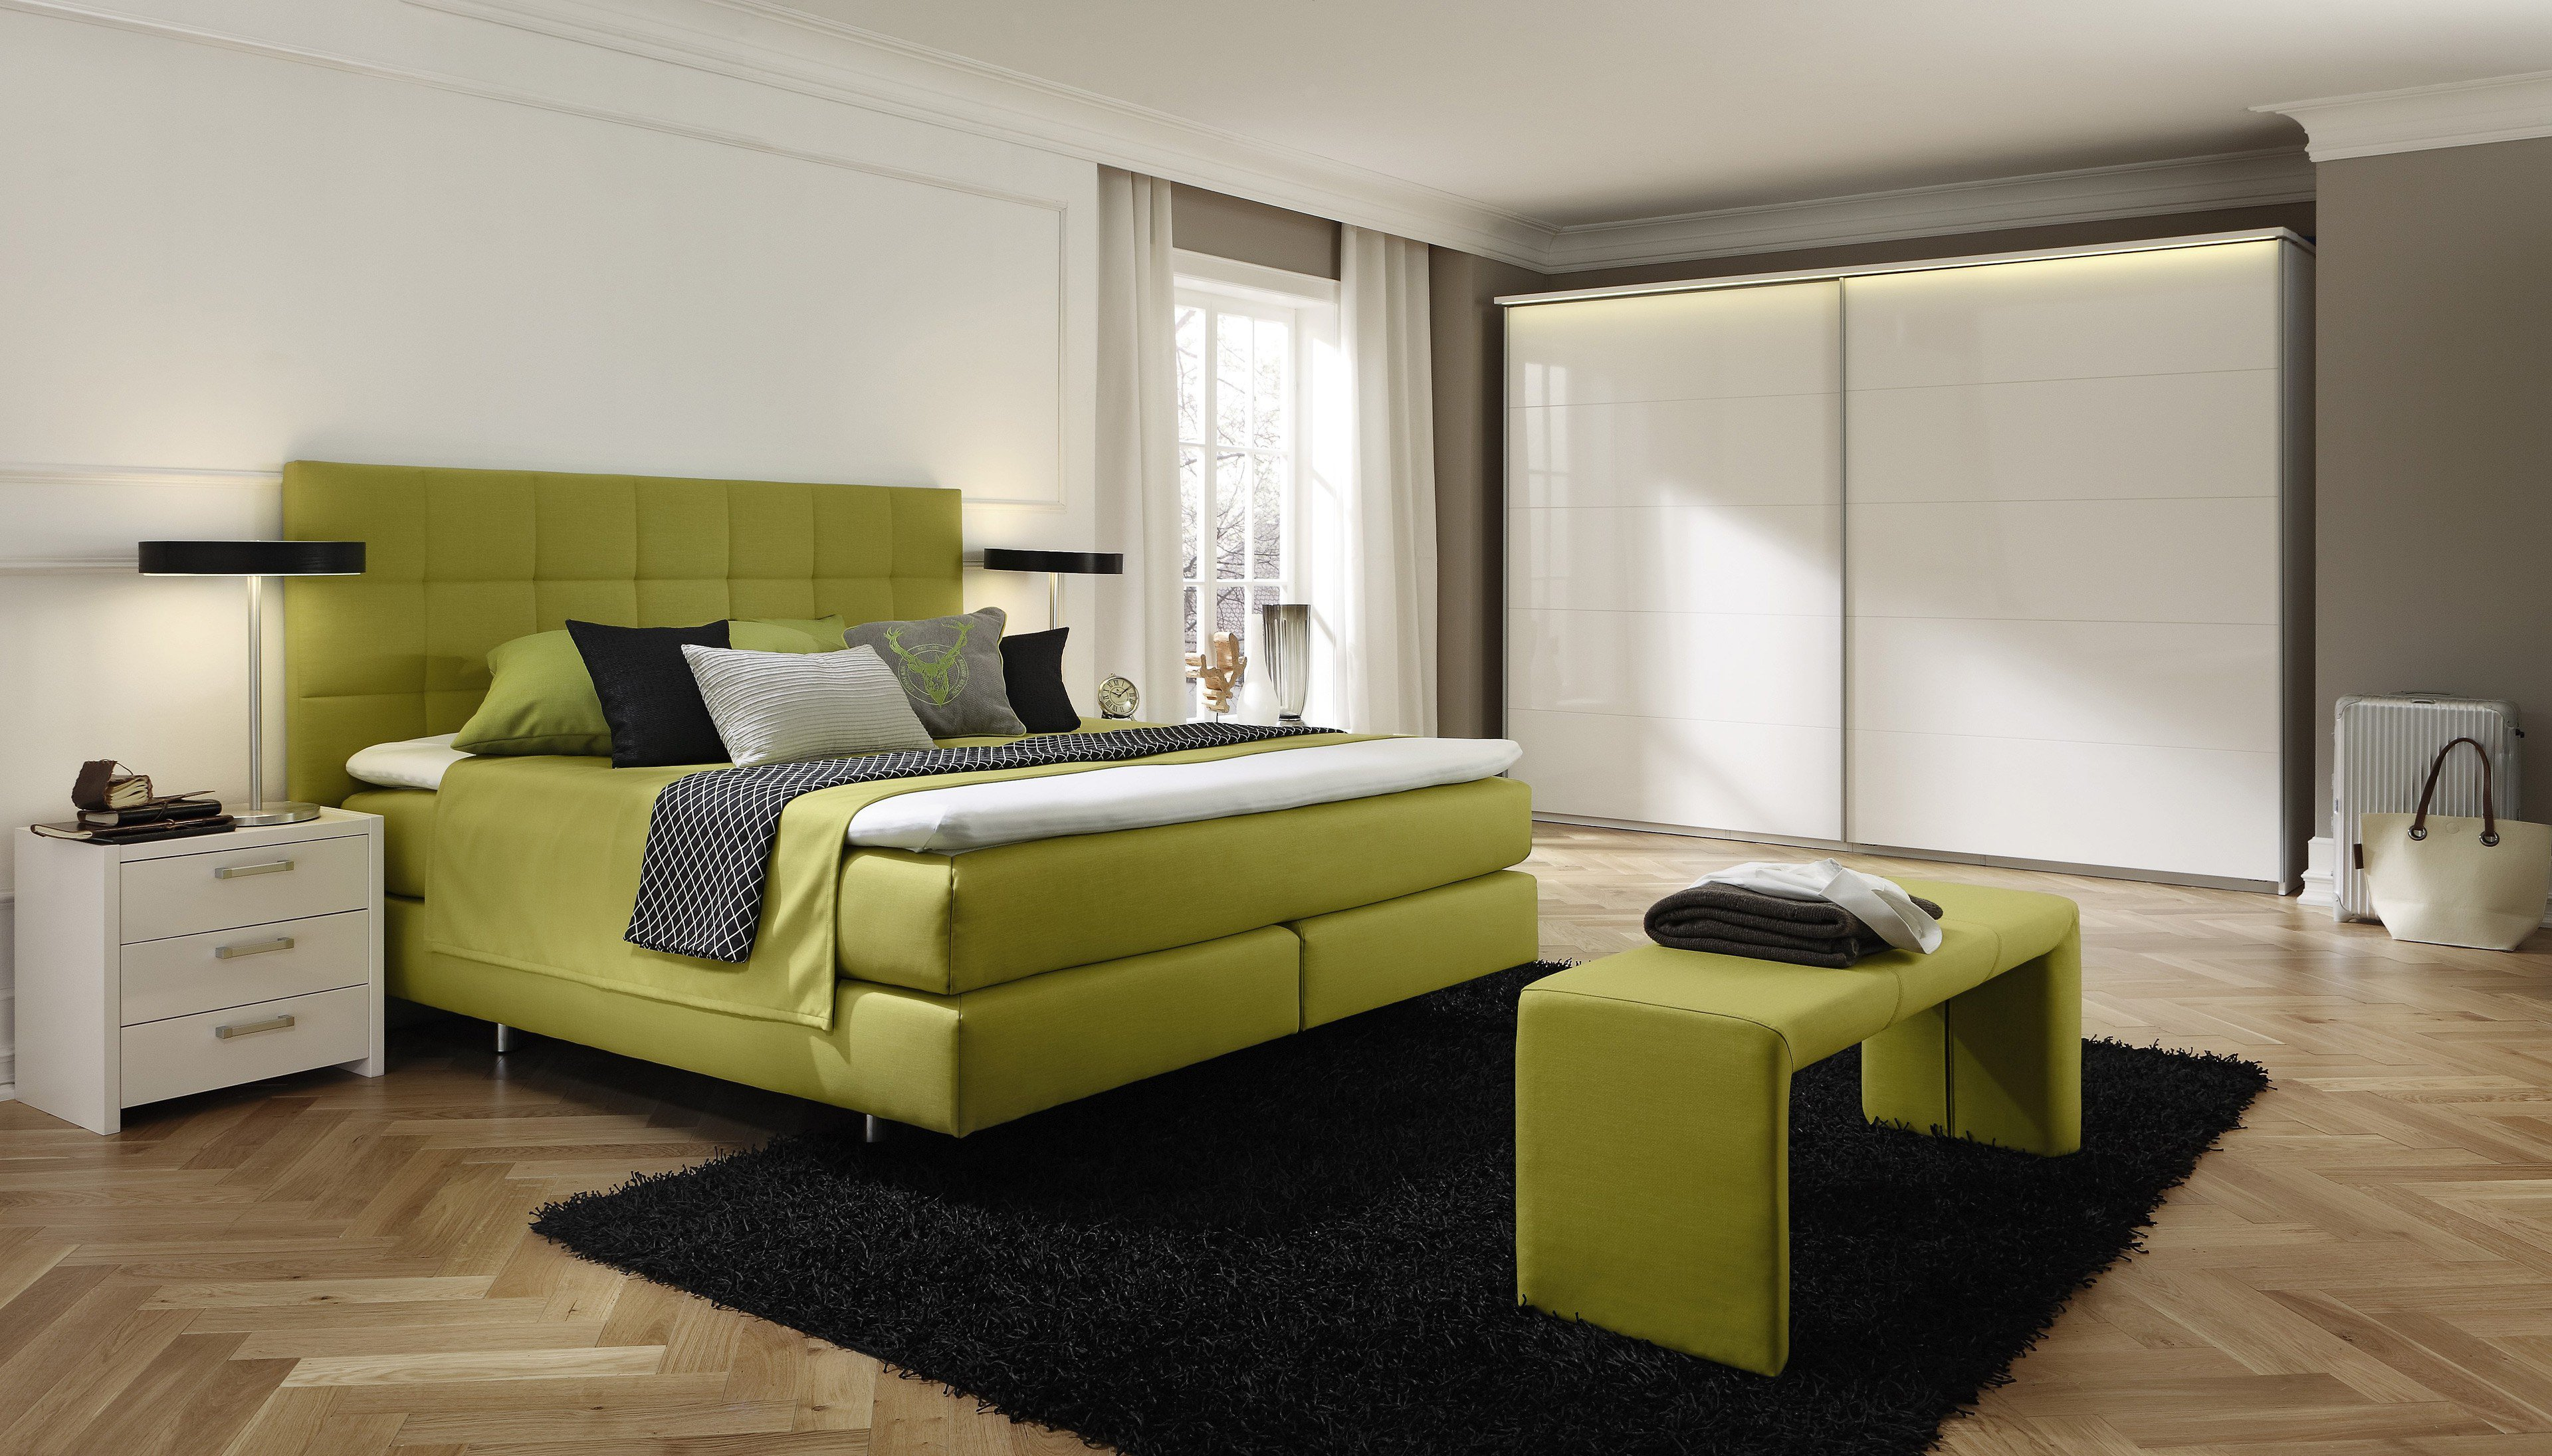 couture von femira boxspringbett gr n m bel letz ihr. Black Bedroom Furniture Sets. Home Design Ideas